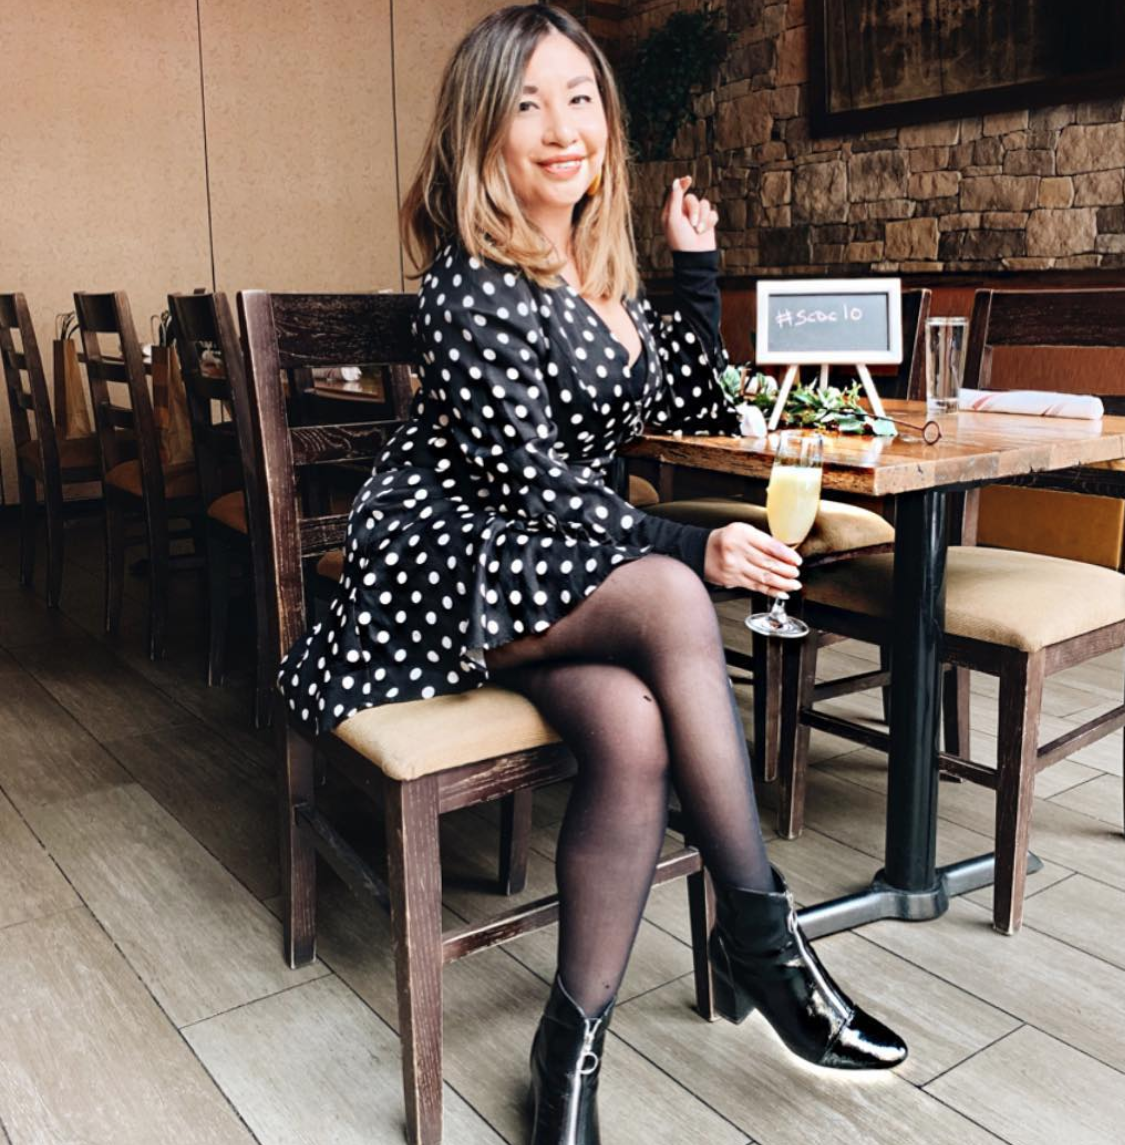 If you can't wait to bust out your spring dresses, you can keep it weather appropriate with tights and uber cute boots too. (Image via @spicycandydc)